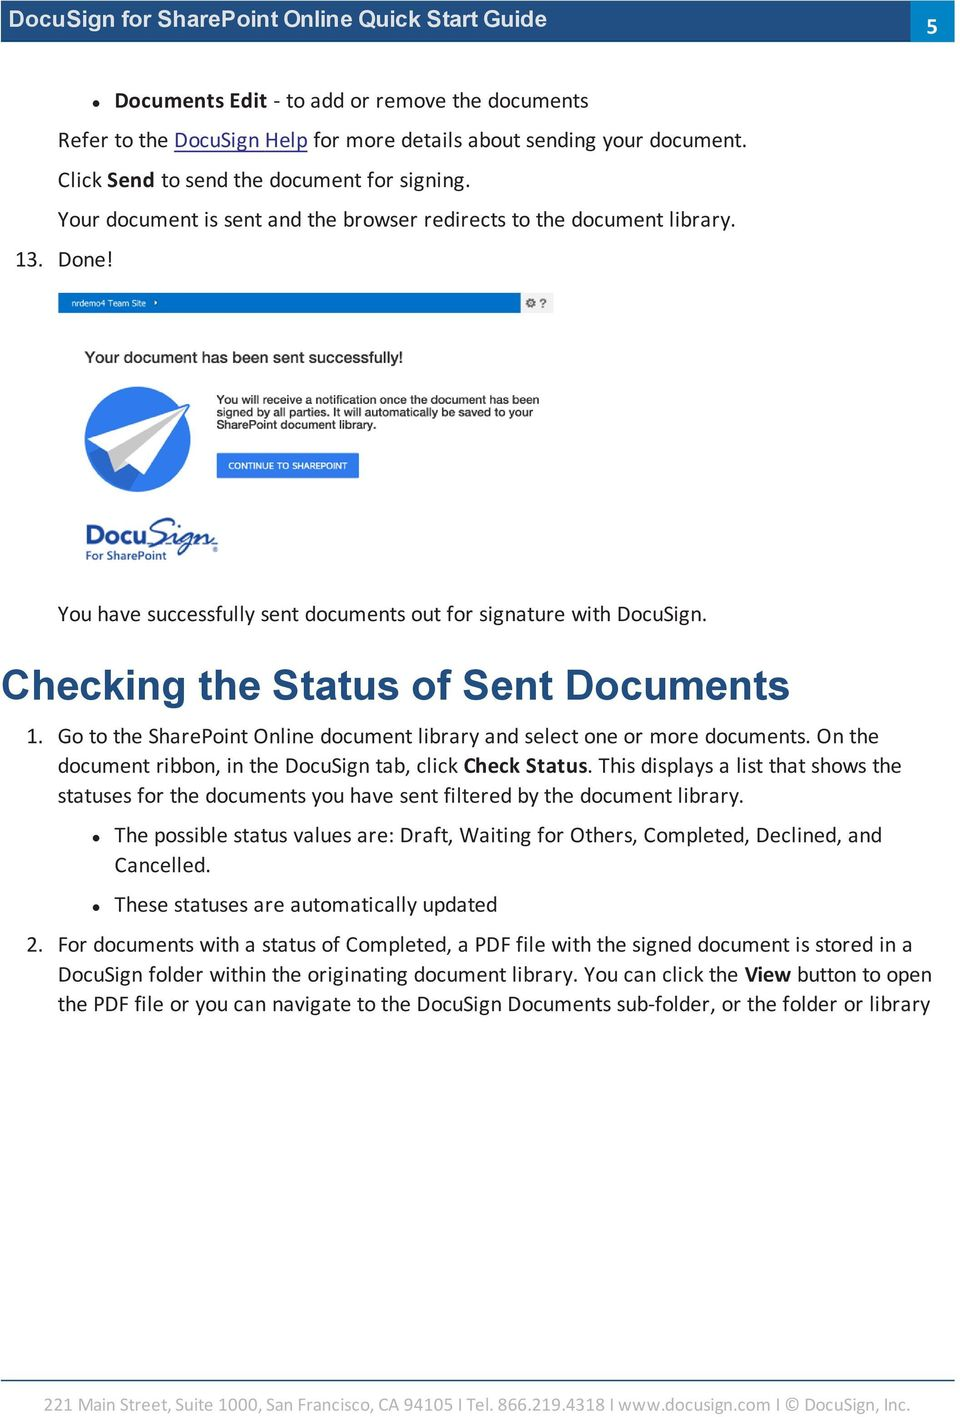 Go to the SharePoint Online document library and select one or more documents. On the document ribbon, in the DocuSign tab, click Check Status.